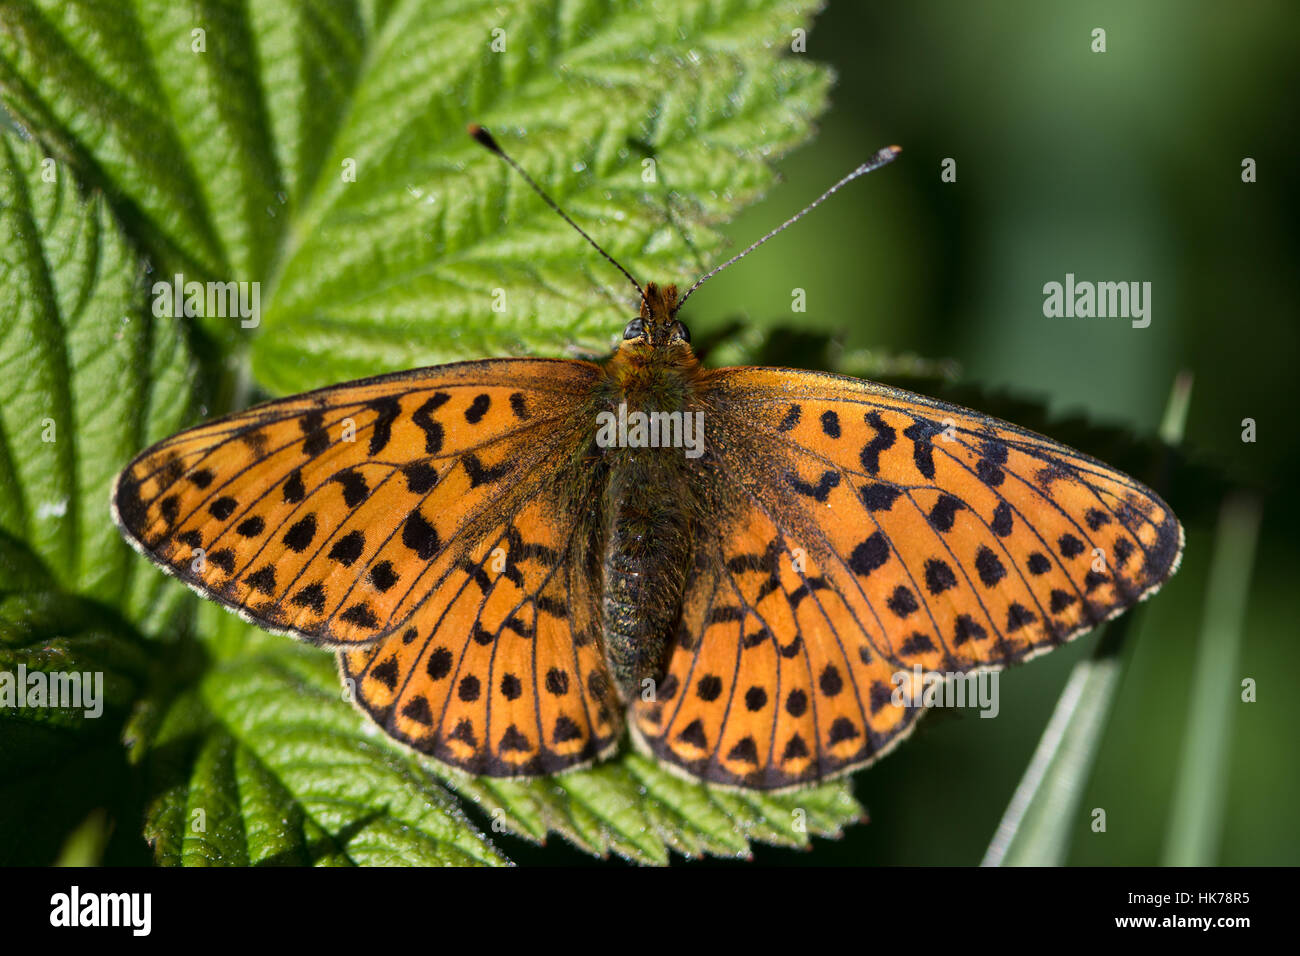 Pearl-bordered Fritillary (Clossiana euphrosyne) butterfly basking in the sun - Stock Image